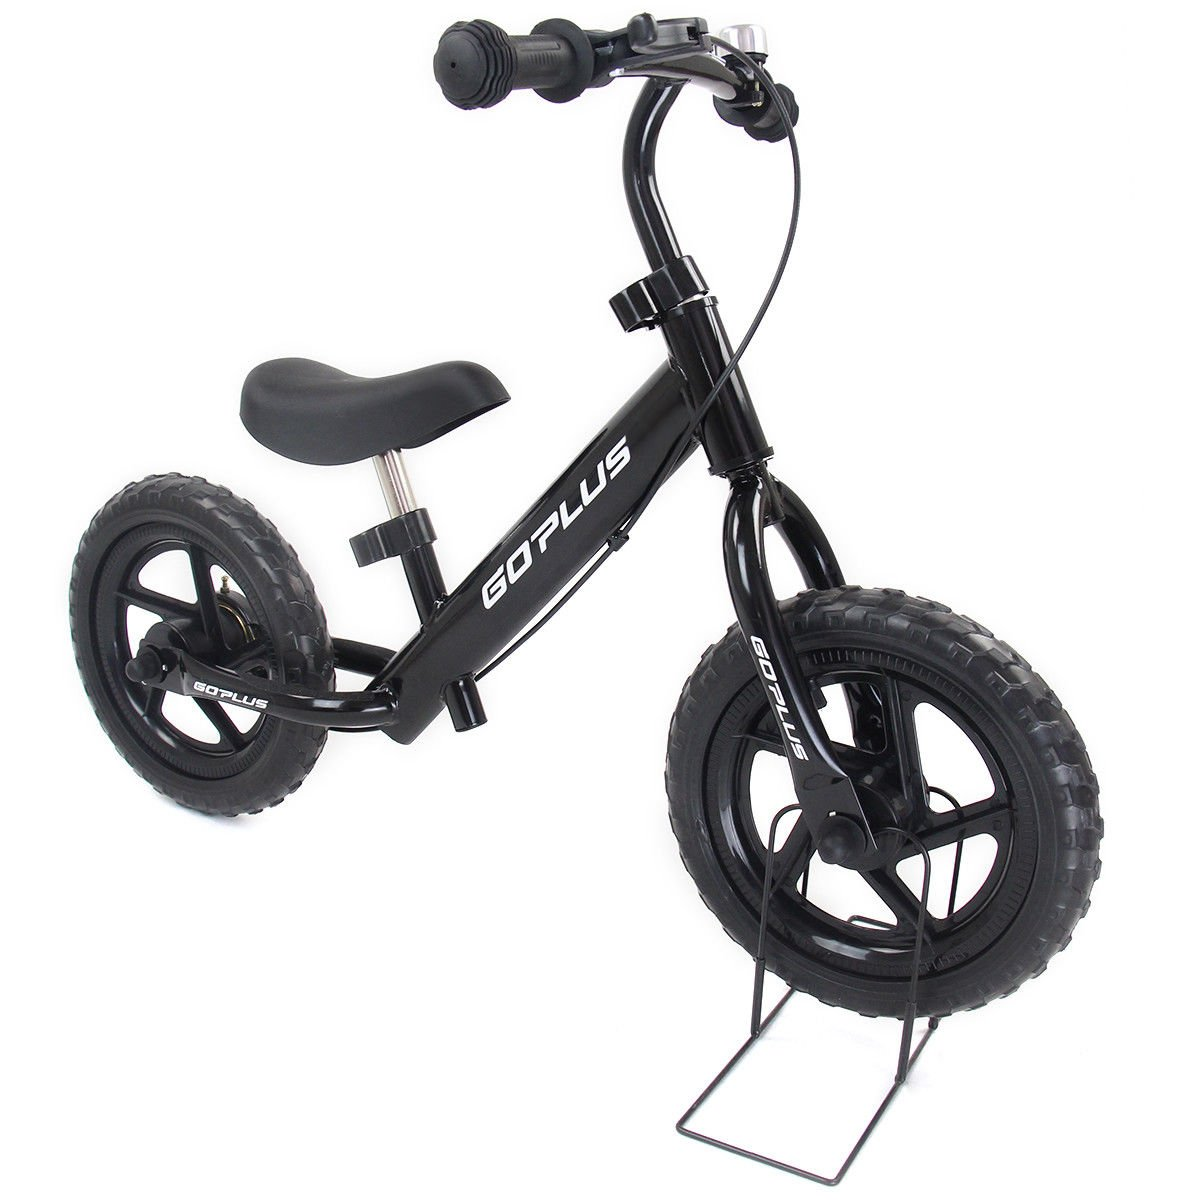 Goplus 12'' Kids Balance Bike No-Pedal Learn To Ride Pre Bike Push Walking Bicycle Adjustable Height with Bell Ring and Stand (Black)